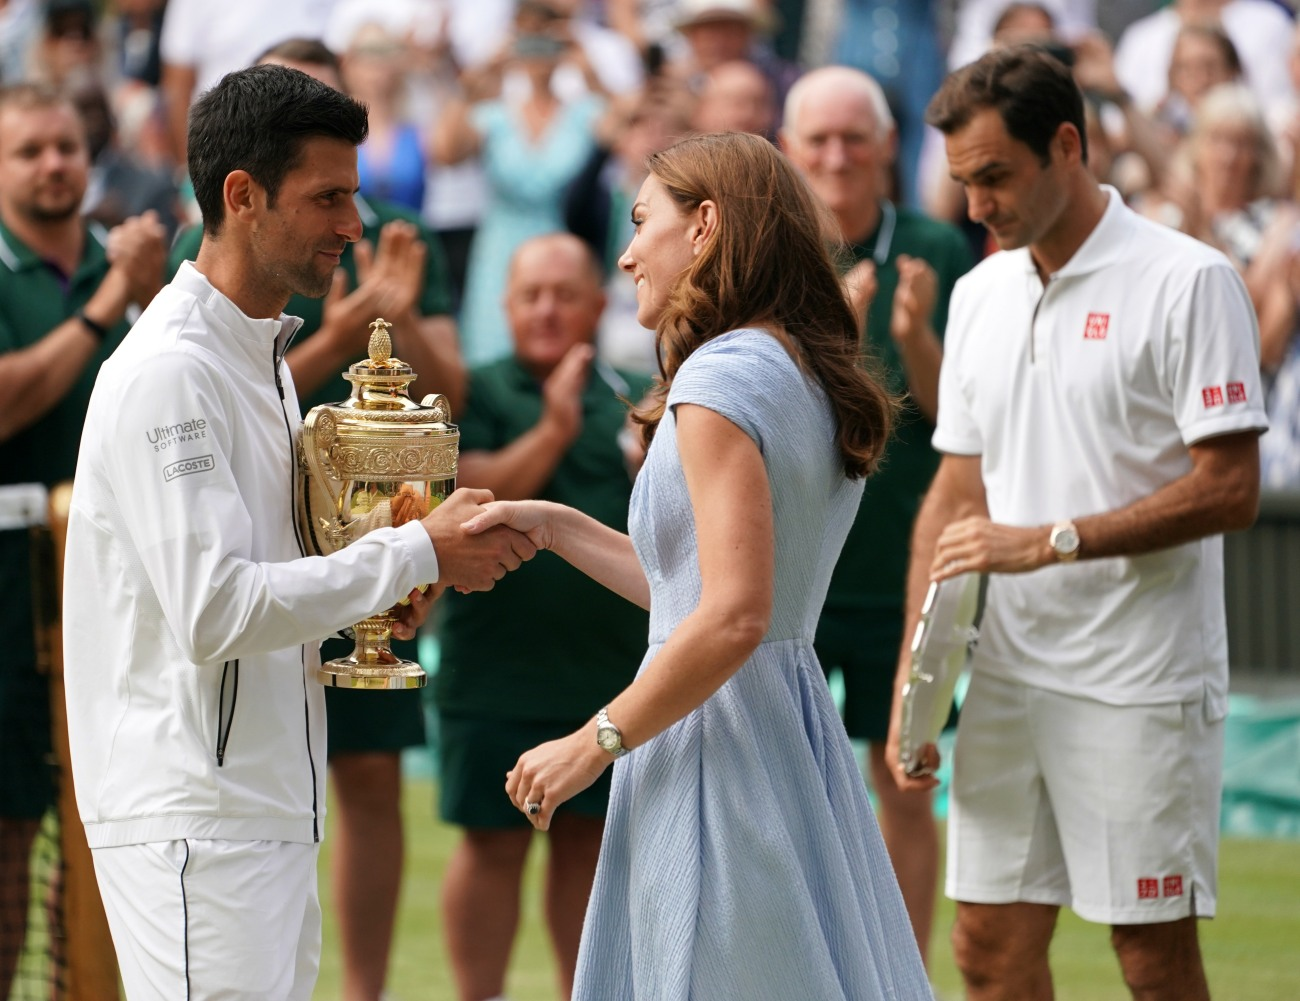 Catherine, Duchess of Cambridge, presents the Wimbledon Men's Singles trophy to Novak Djokovic after his victory over Roger Federer.London, United Kingdom - Sunday July 14th, 2019.